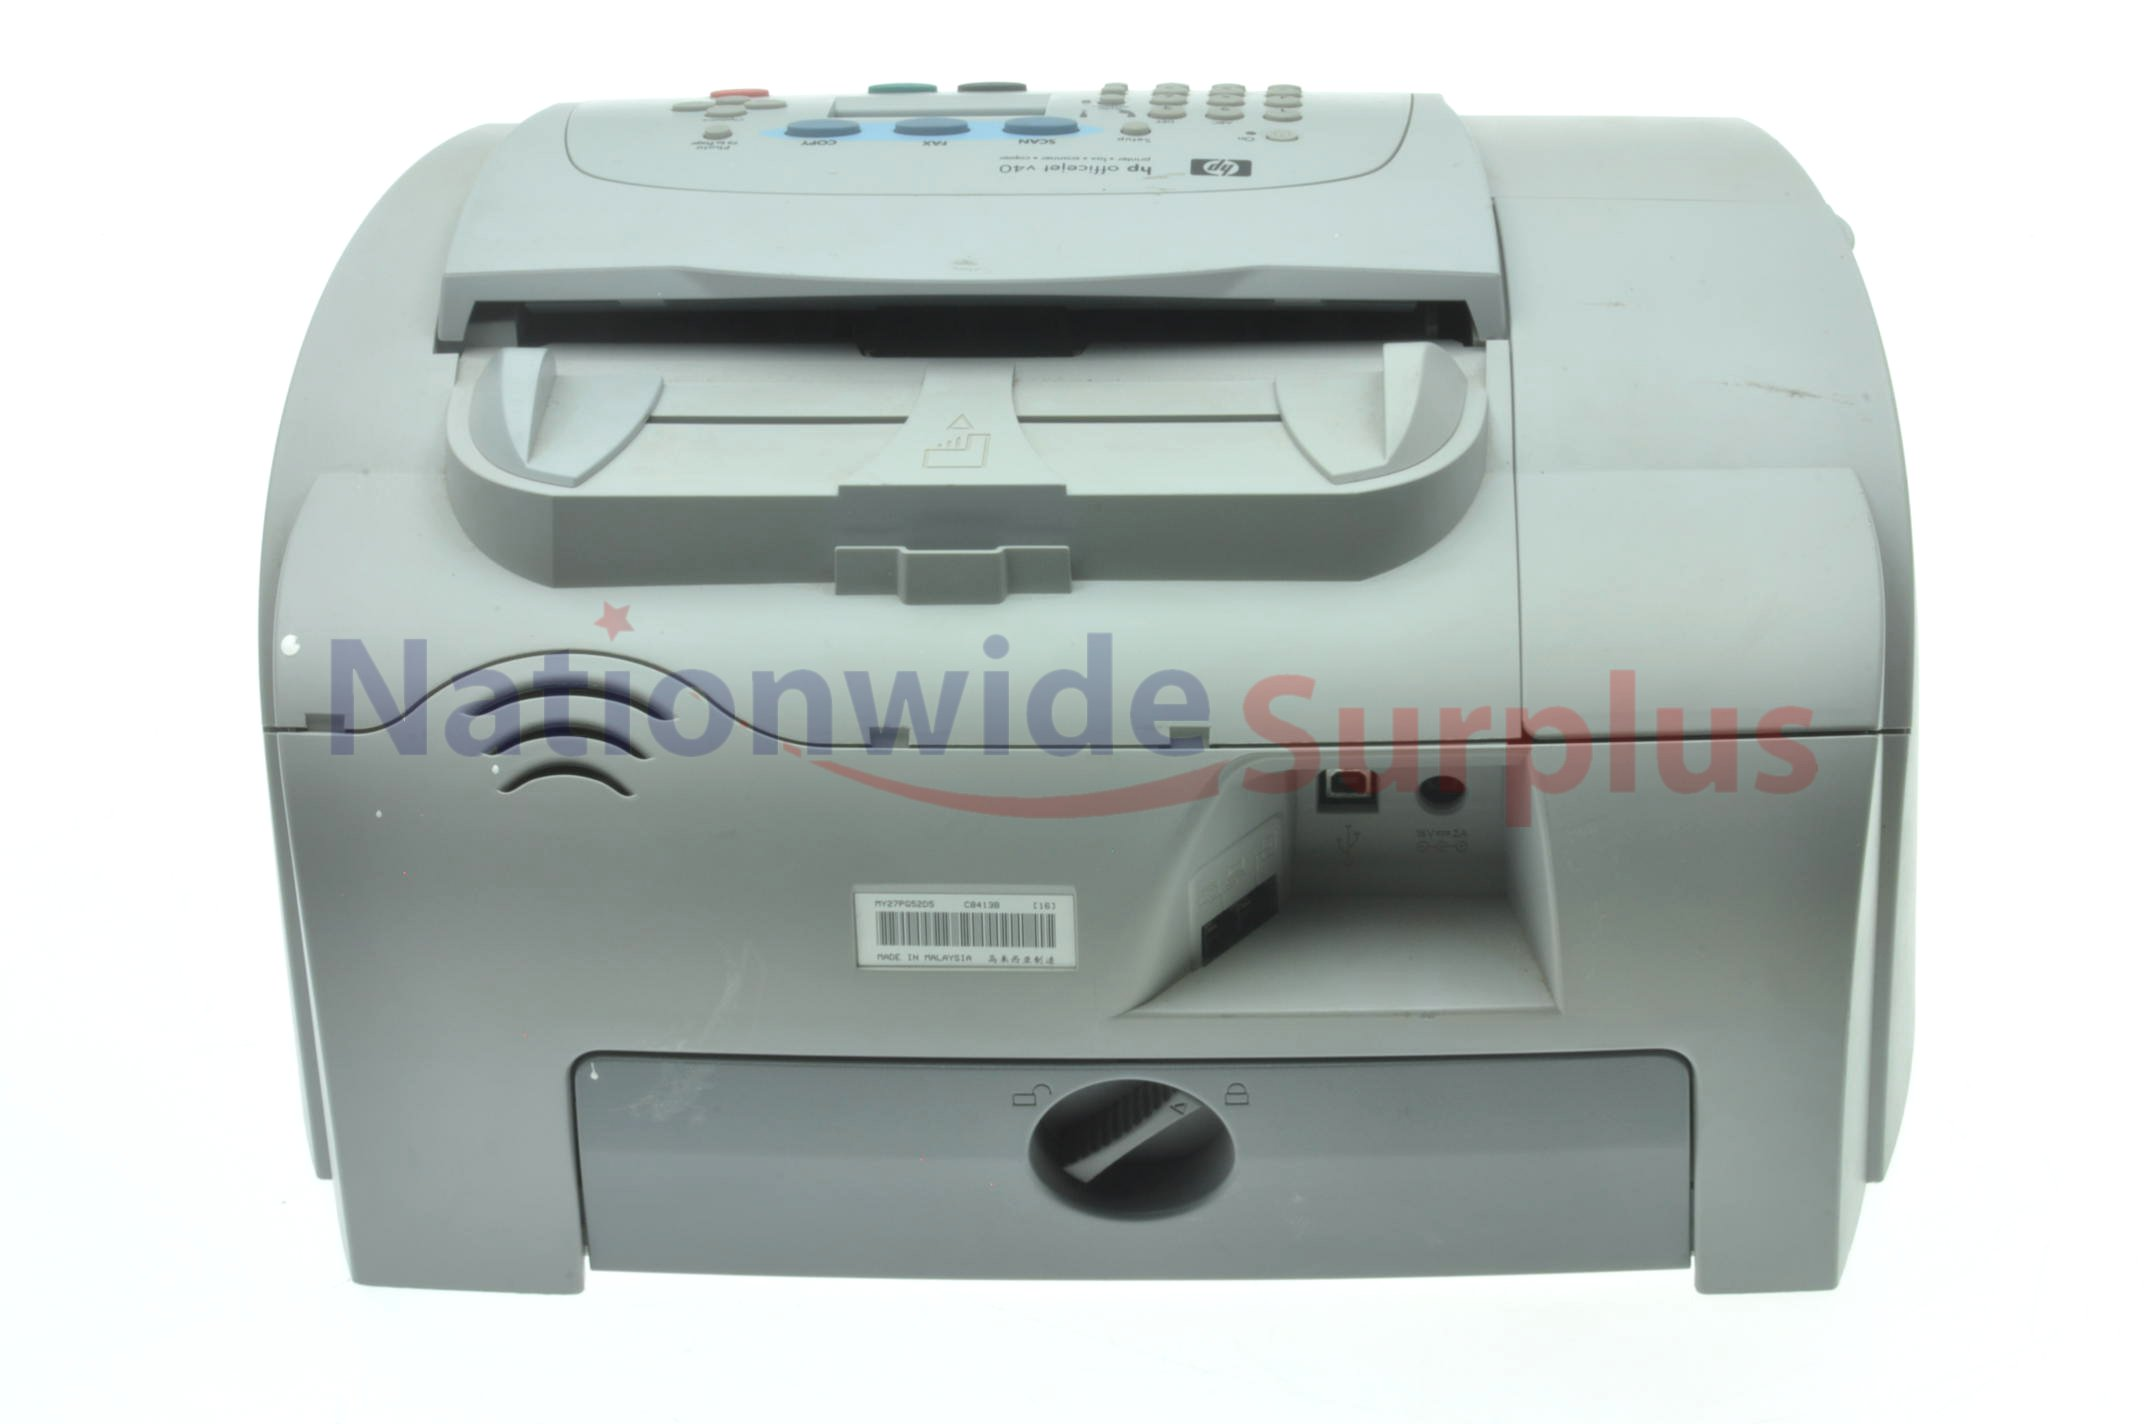 HP Officejet V40 All in One Printer Copy Scan | eBay